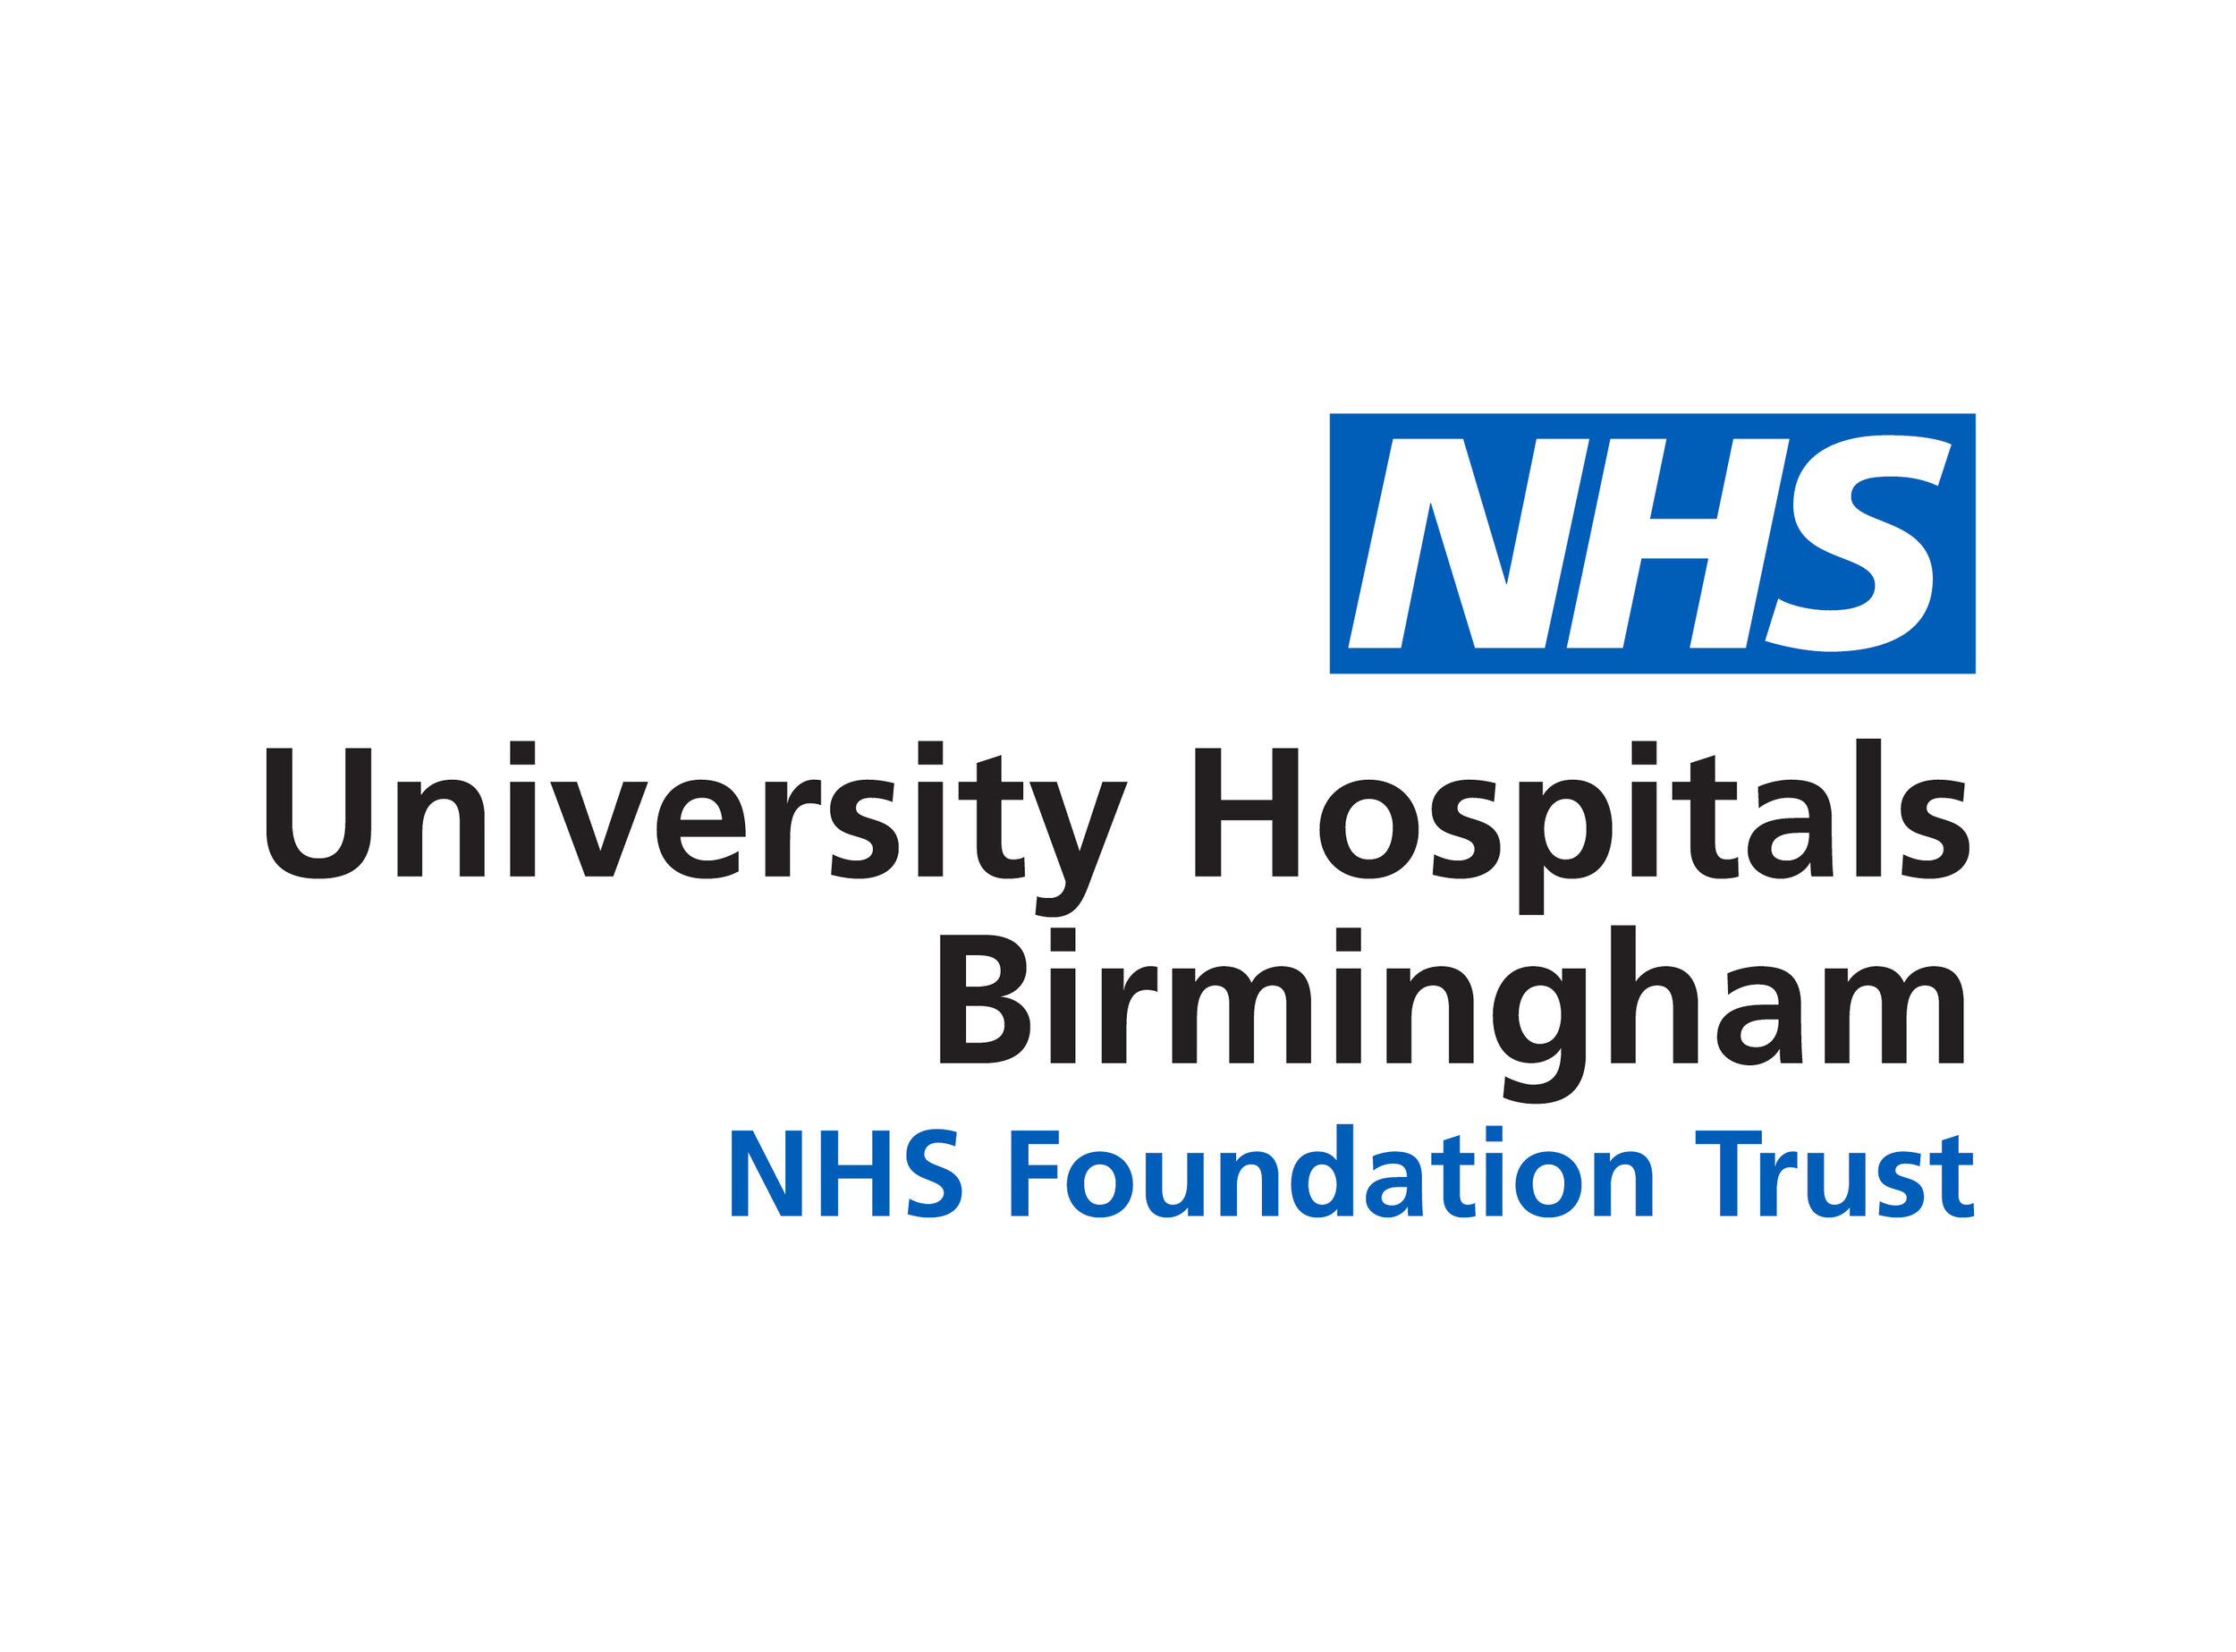 University Hospitals Birmingham NHS Foundation Trust RESIZED.jpg